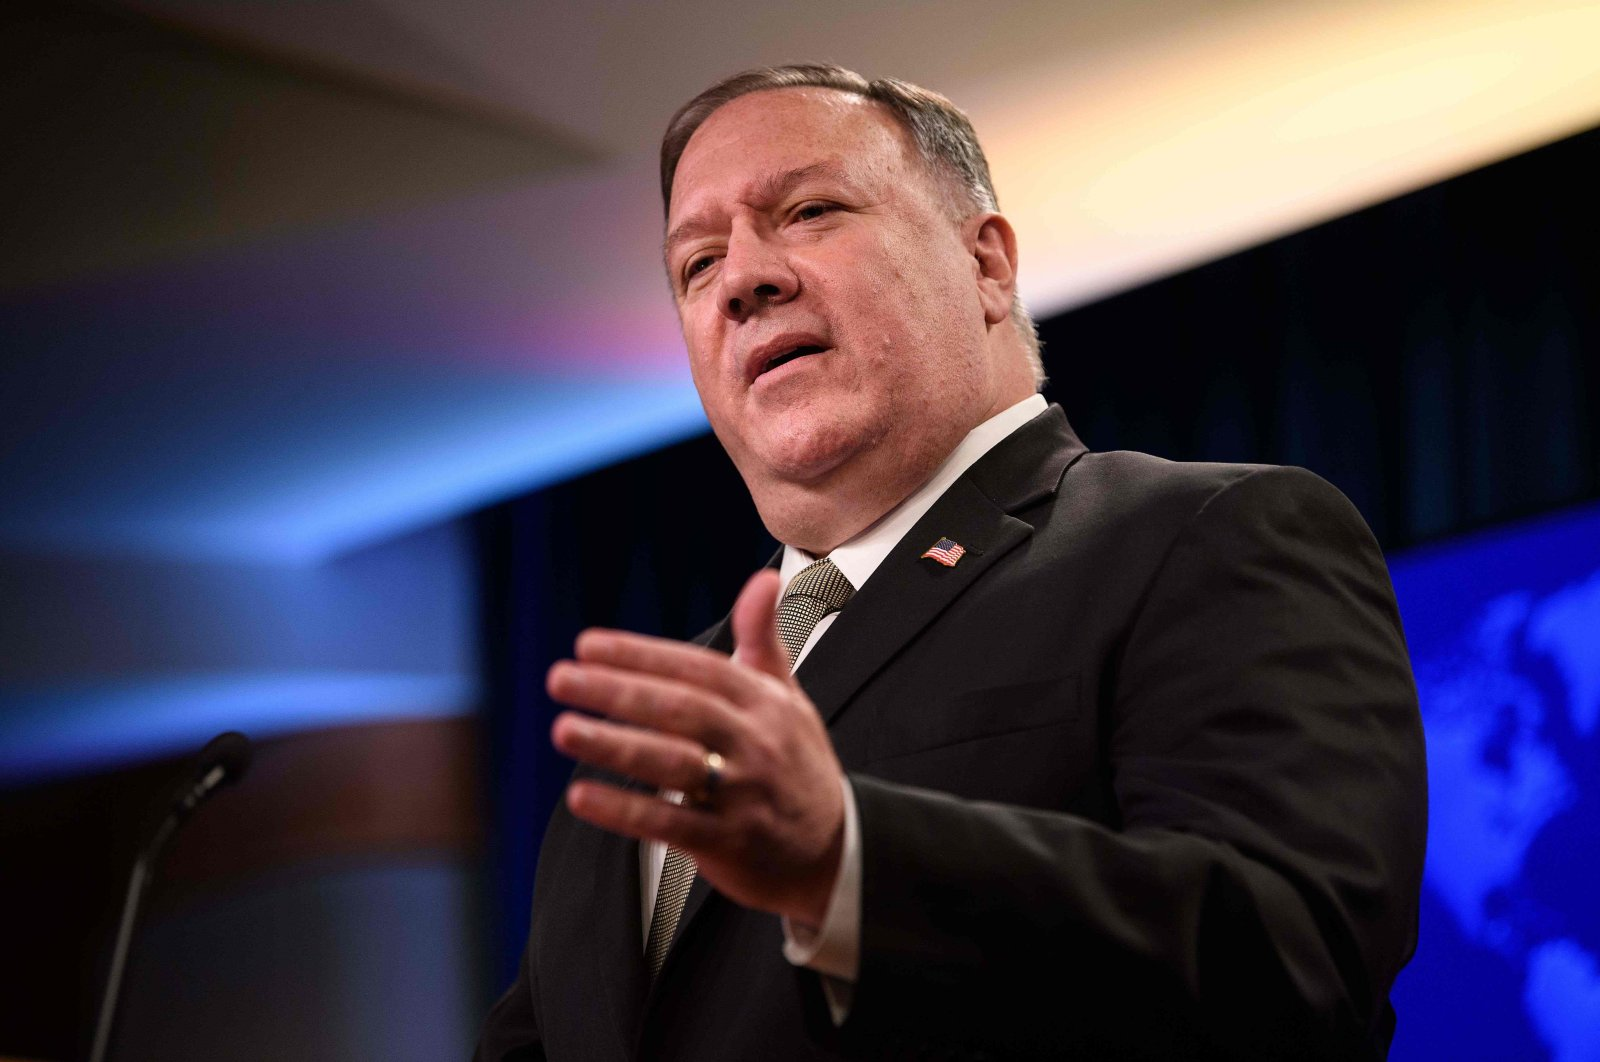 U.S. Secretary of State Mike Pompeo speaks during his weekly briefing at the State Department in Washington, D.C., Sept. 2, 2020. (AFP Photo)